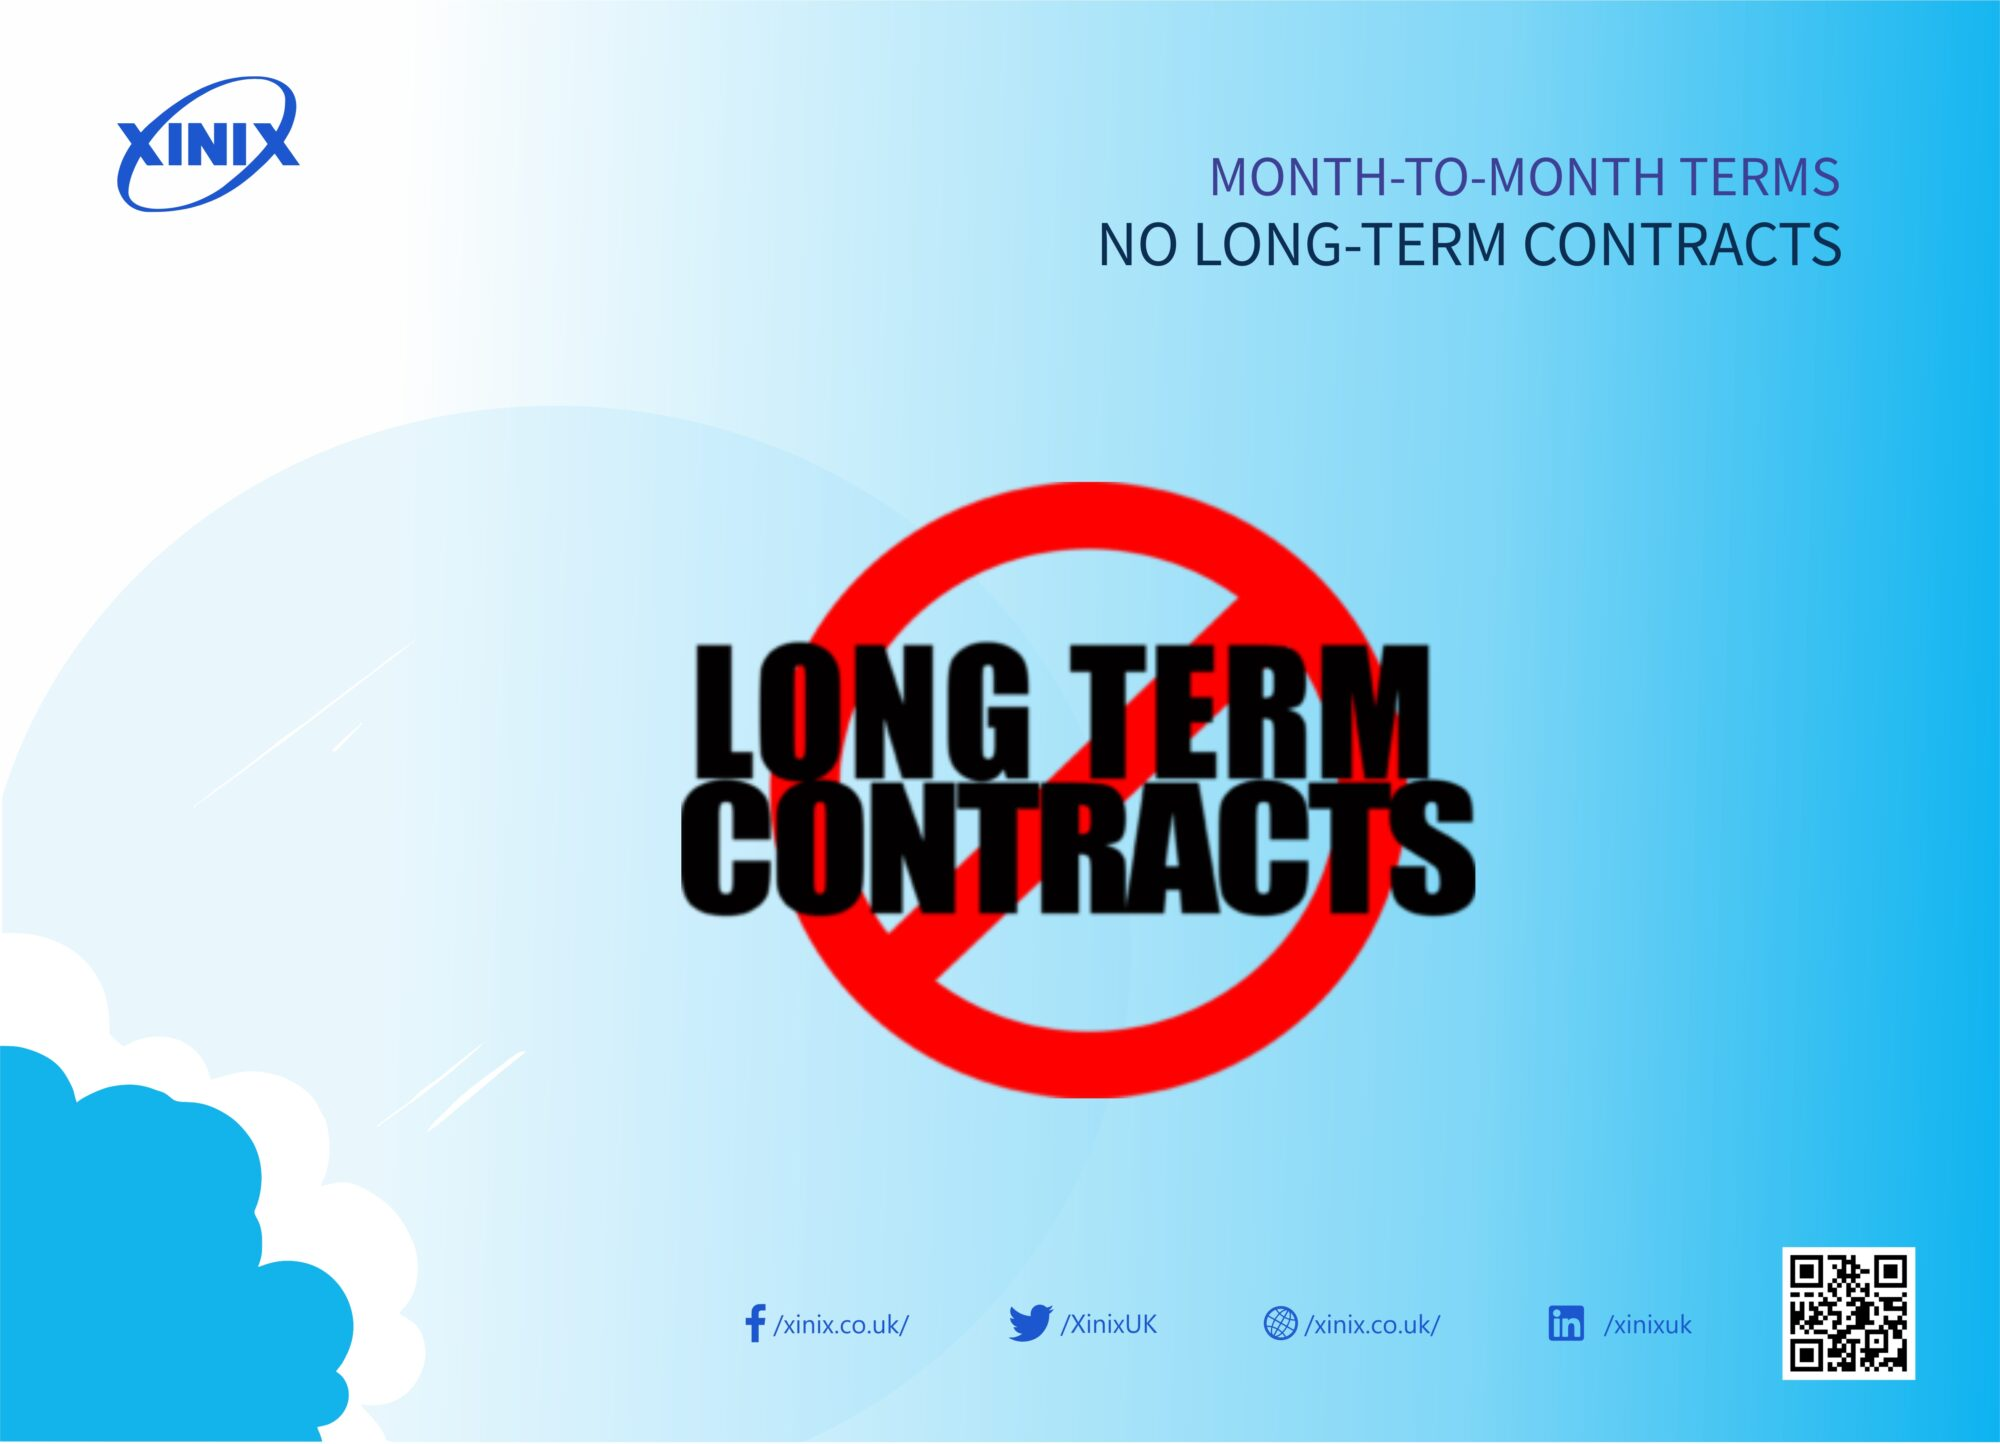 Month-to-Month Terms, No Long-Term Contracts